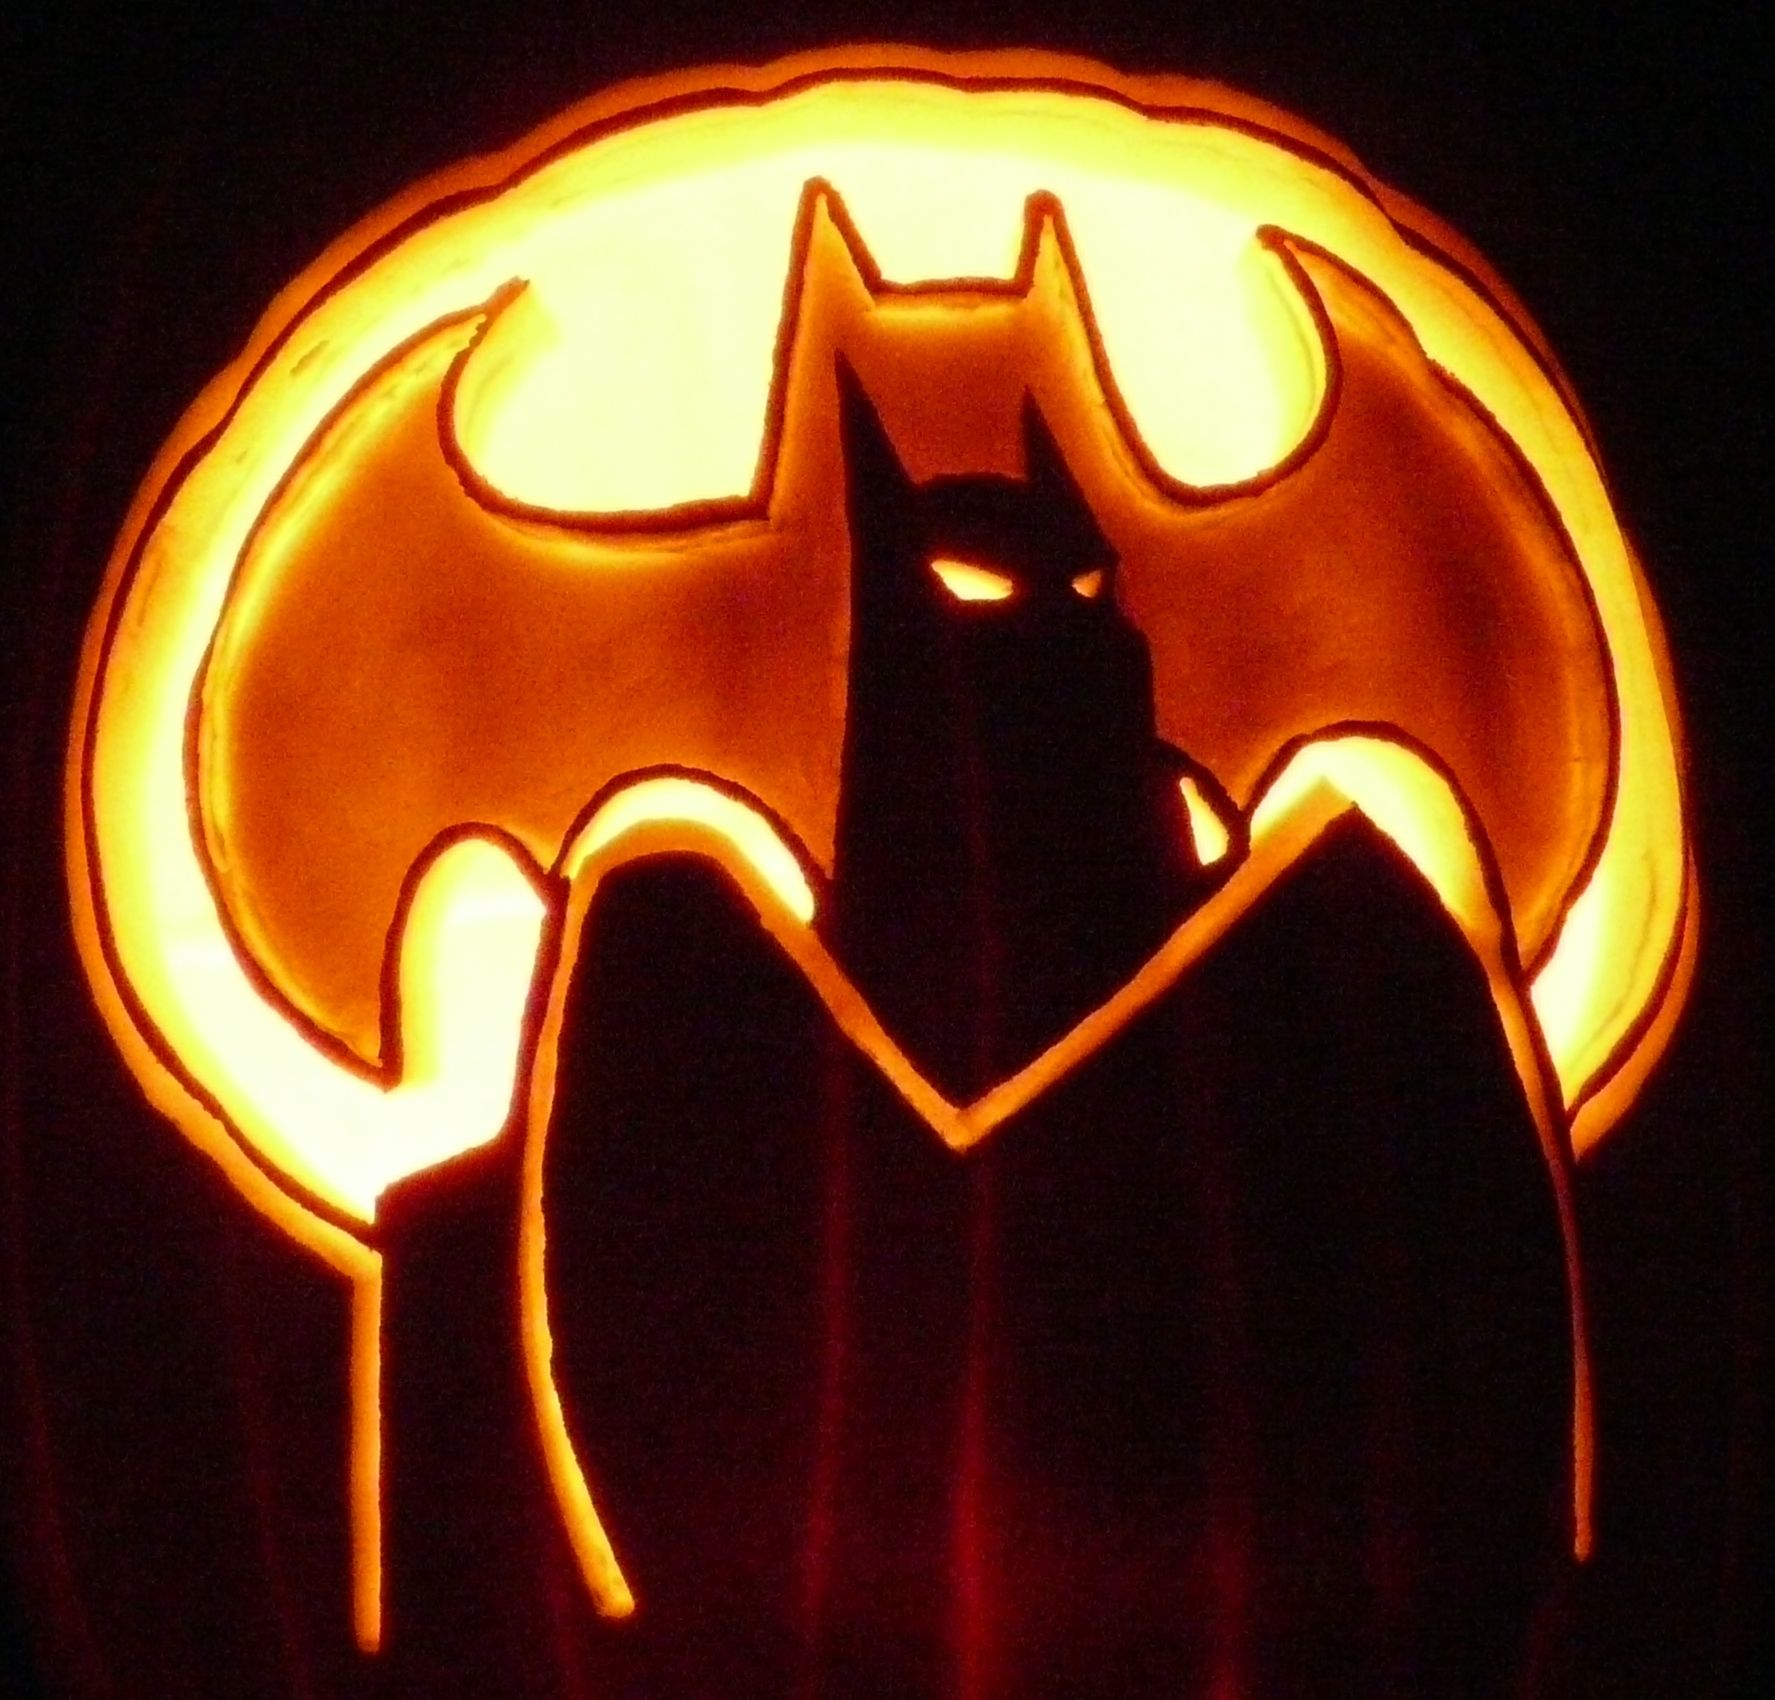 Here's a Batman pumpkin carving from a pattern by stoneykins.com ...